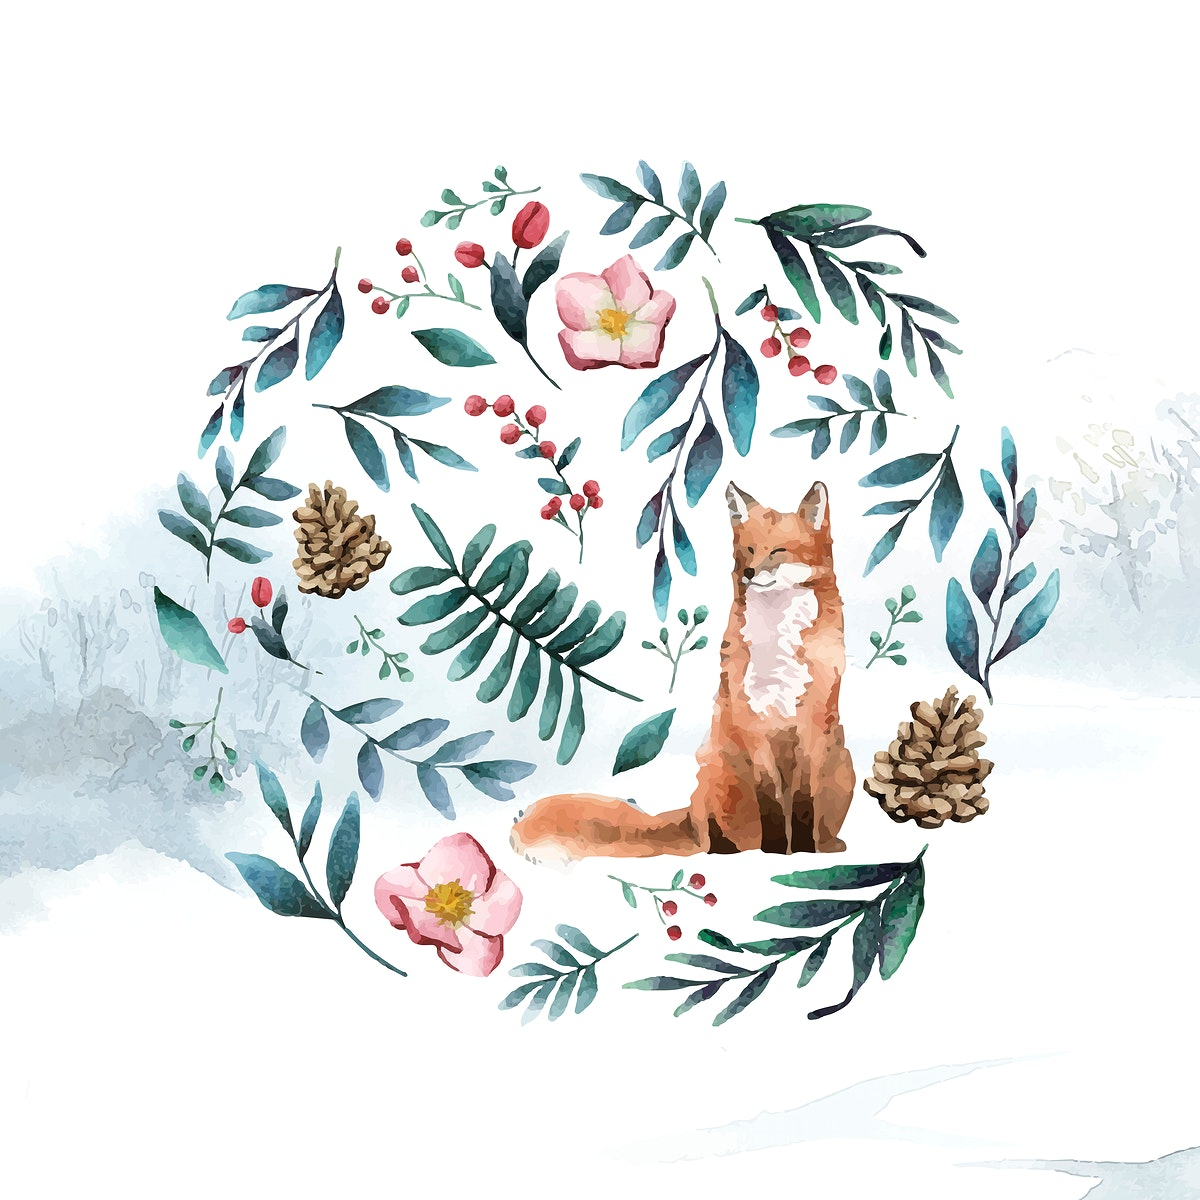 Fox in nature painted by watercolor